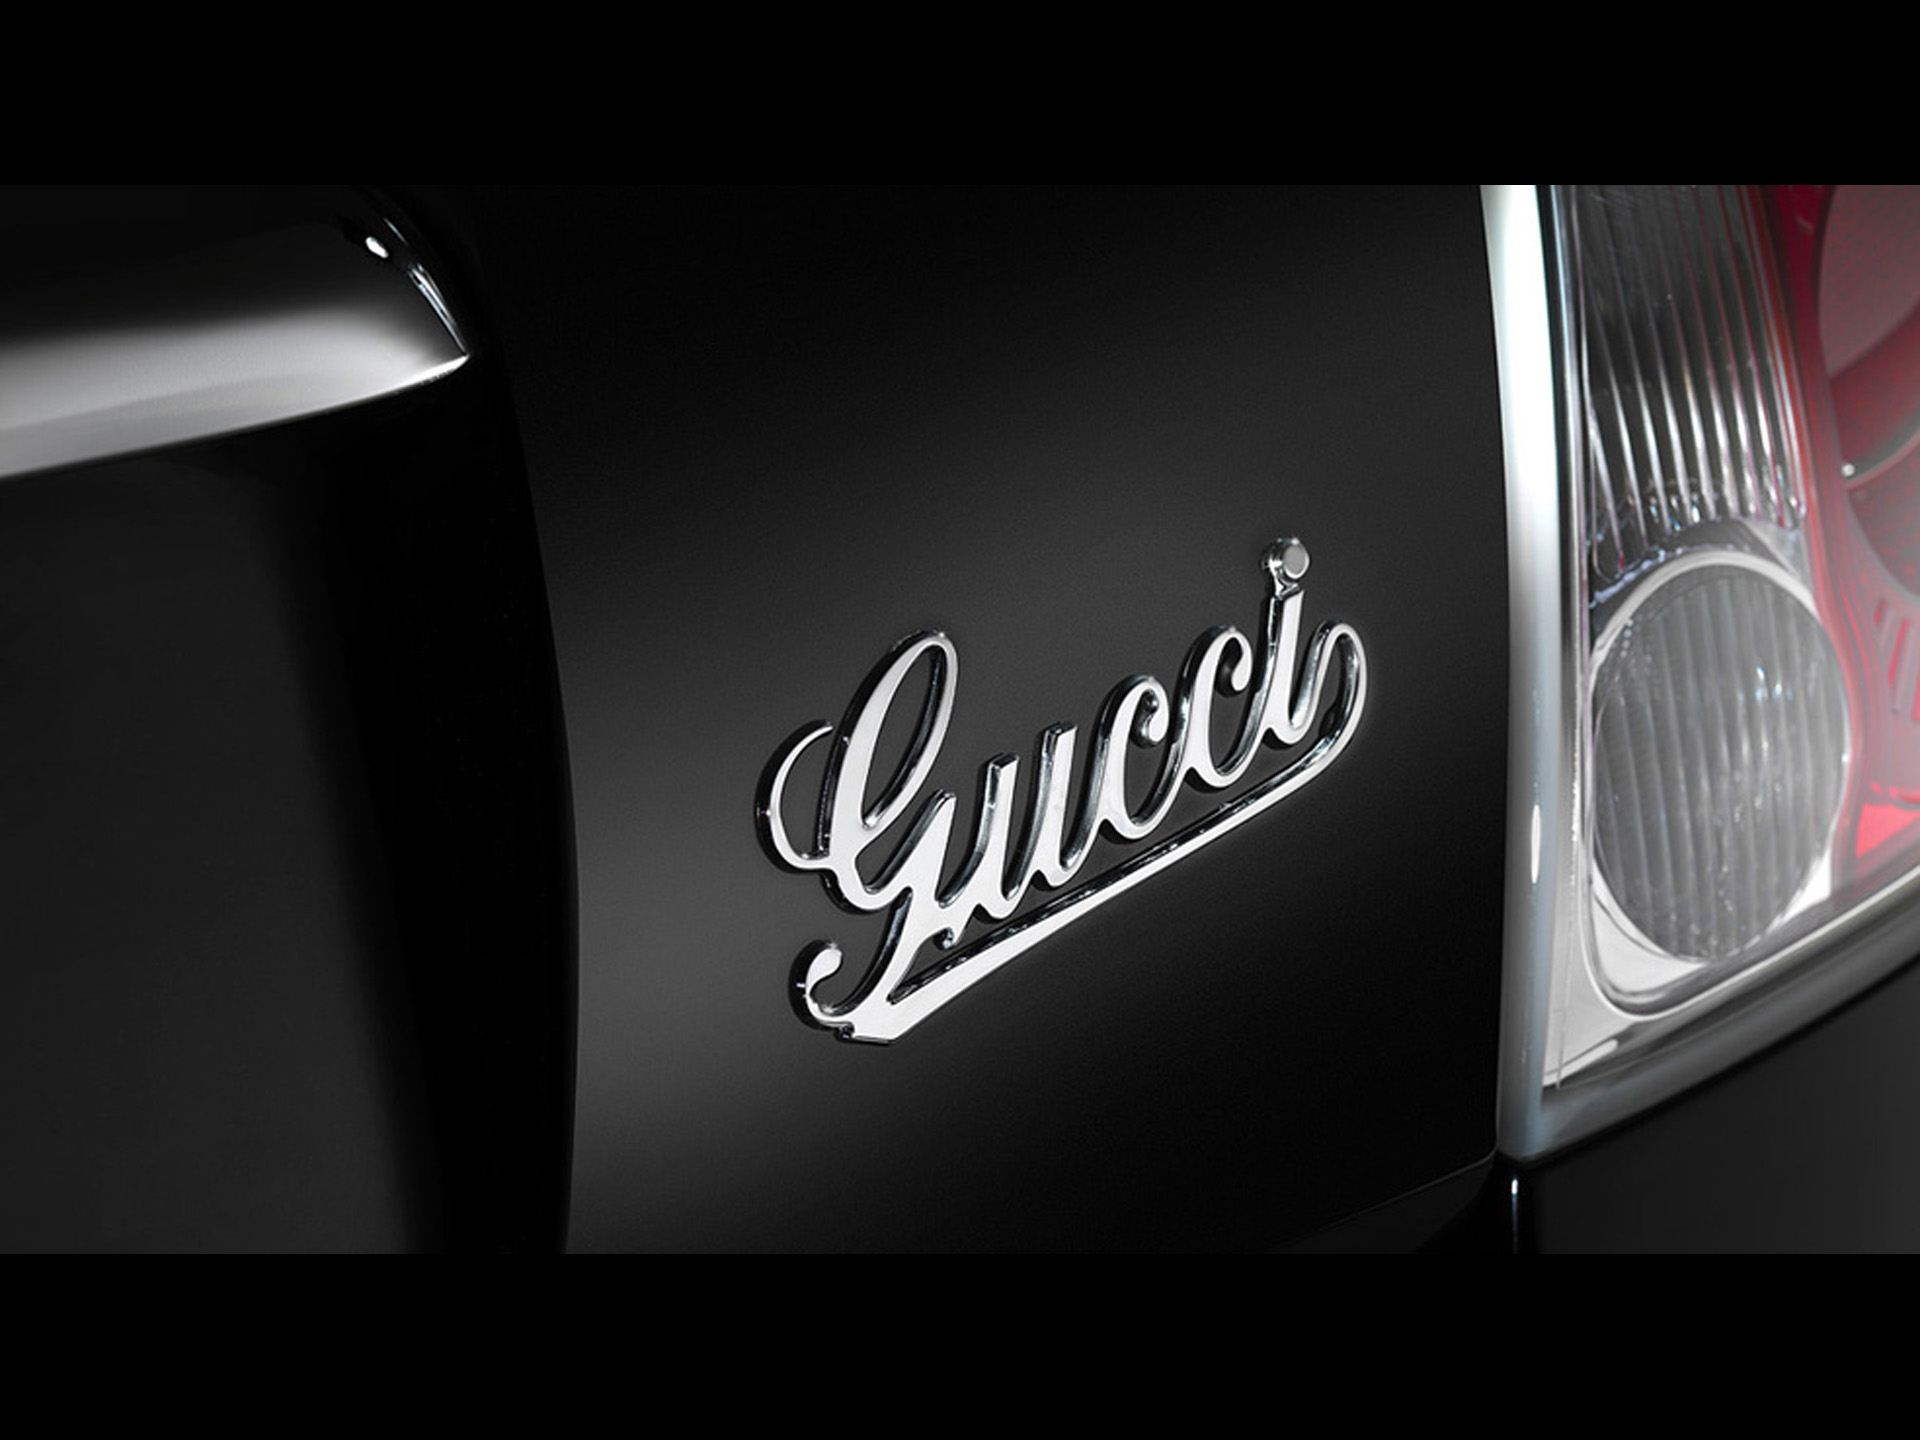 Desktop Wallpaper Cars Logos Ferrari Fiat 500 By Gucci Wallpapers Fiat 500 By Gucci Stock Photos